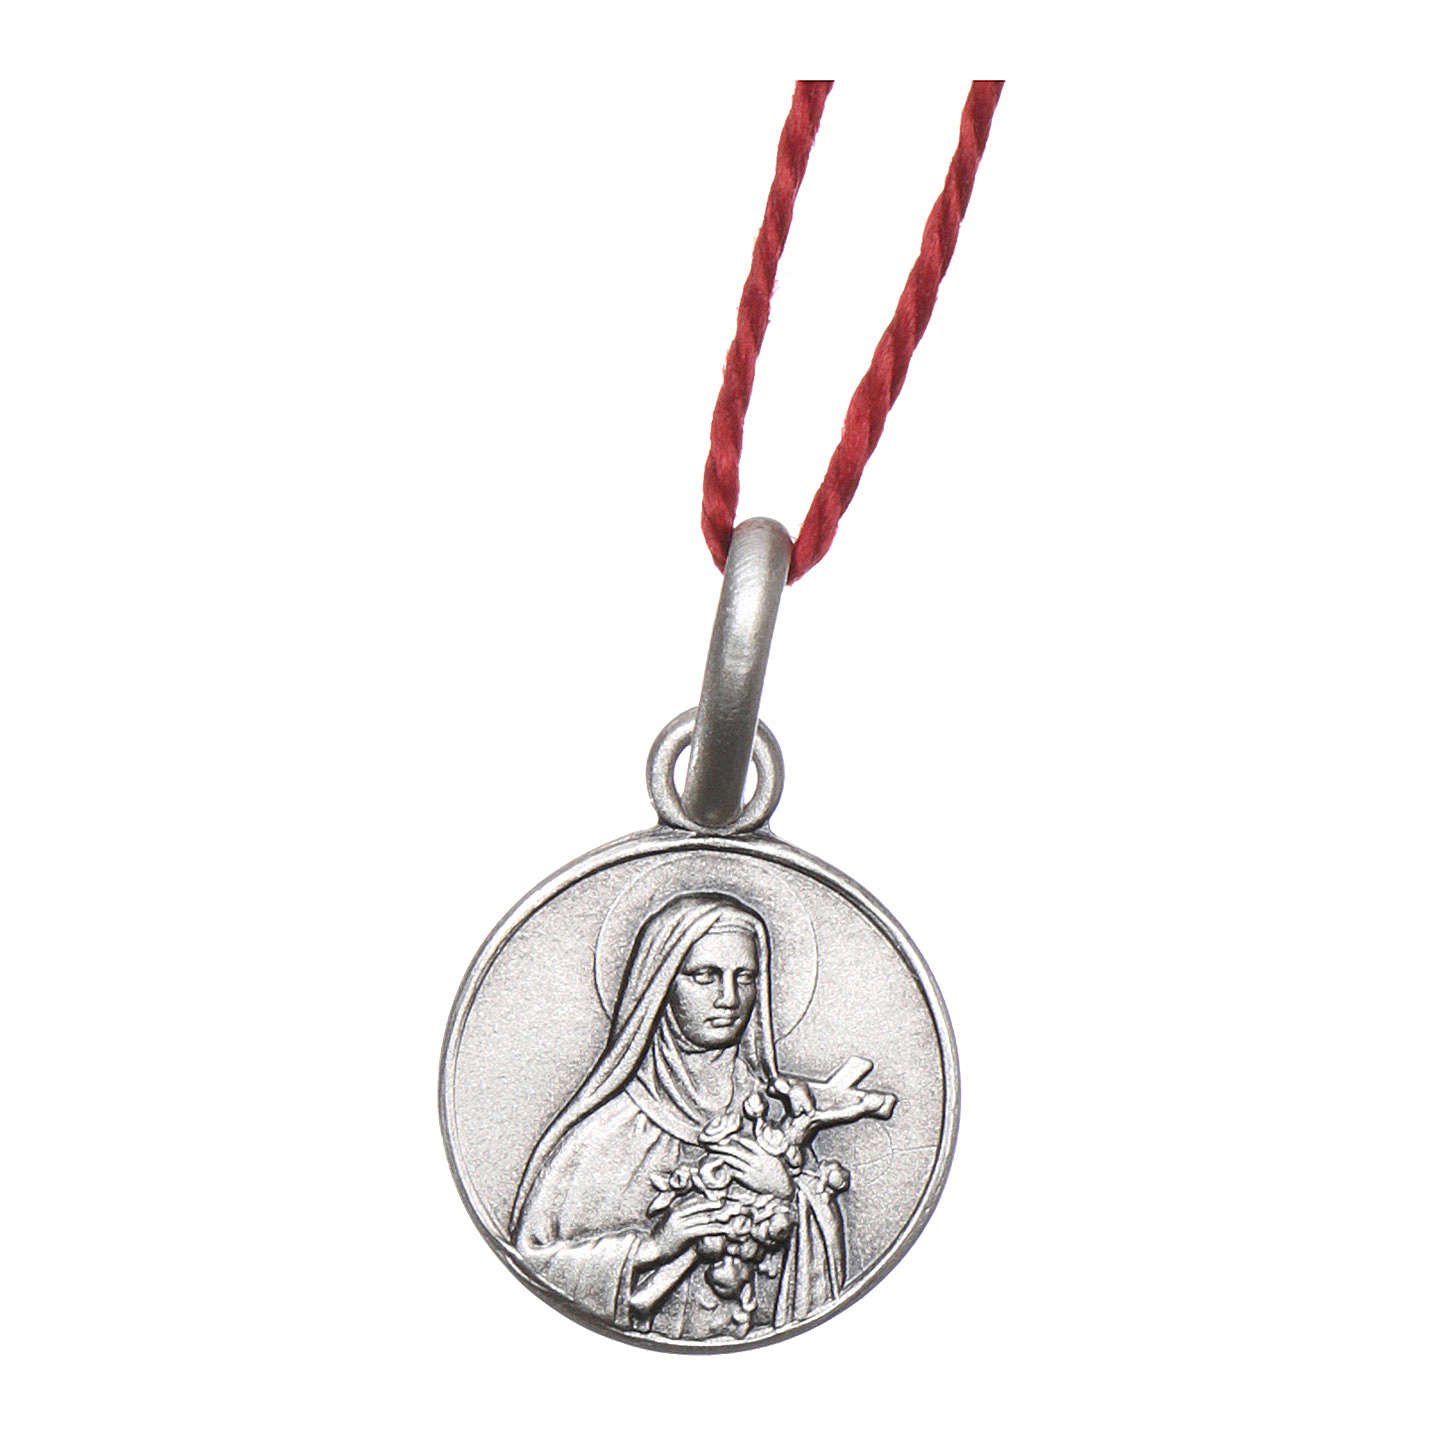 Rhodium plated medal with St. Theresa and Baby Jesus 10 mm 4